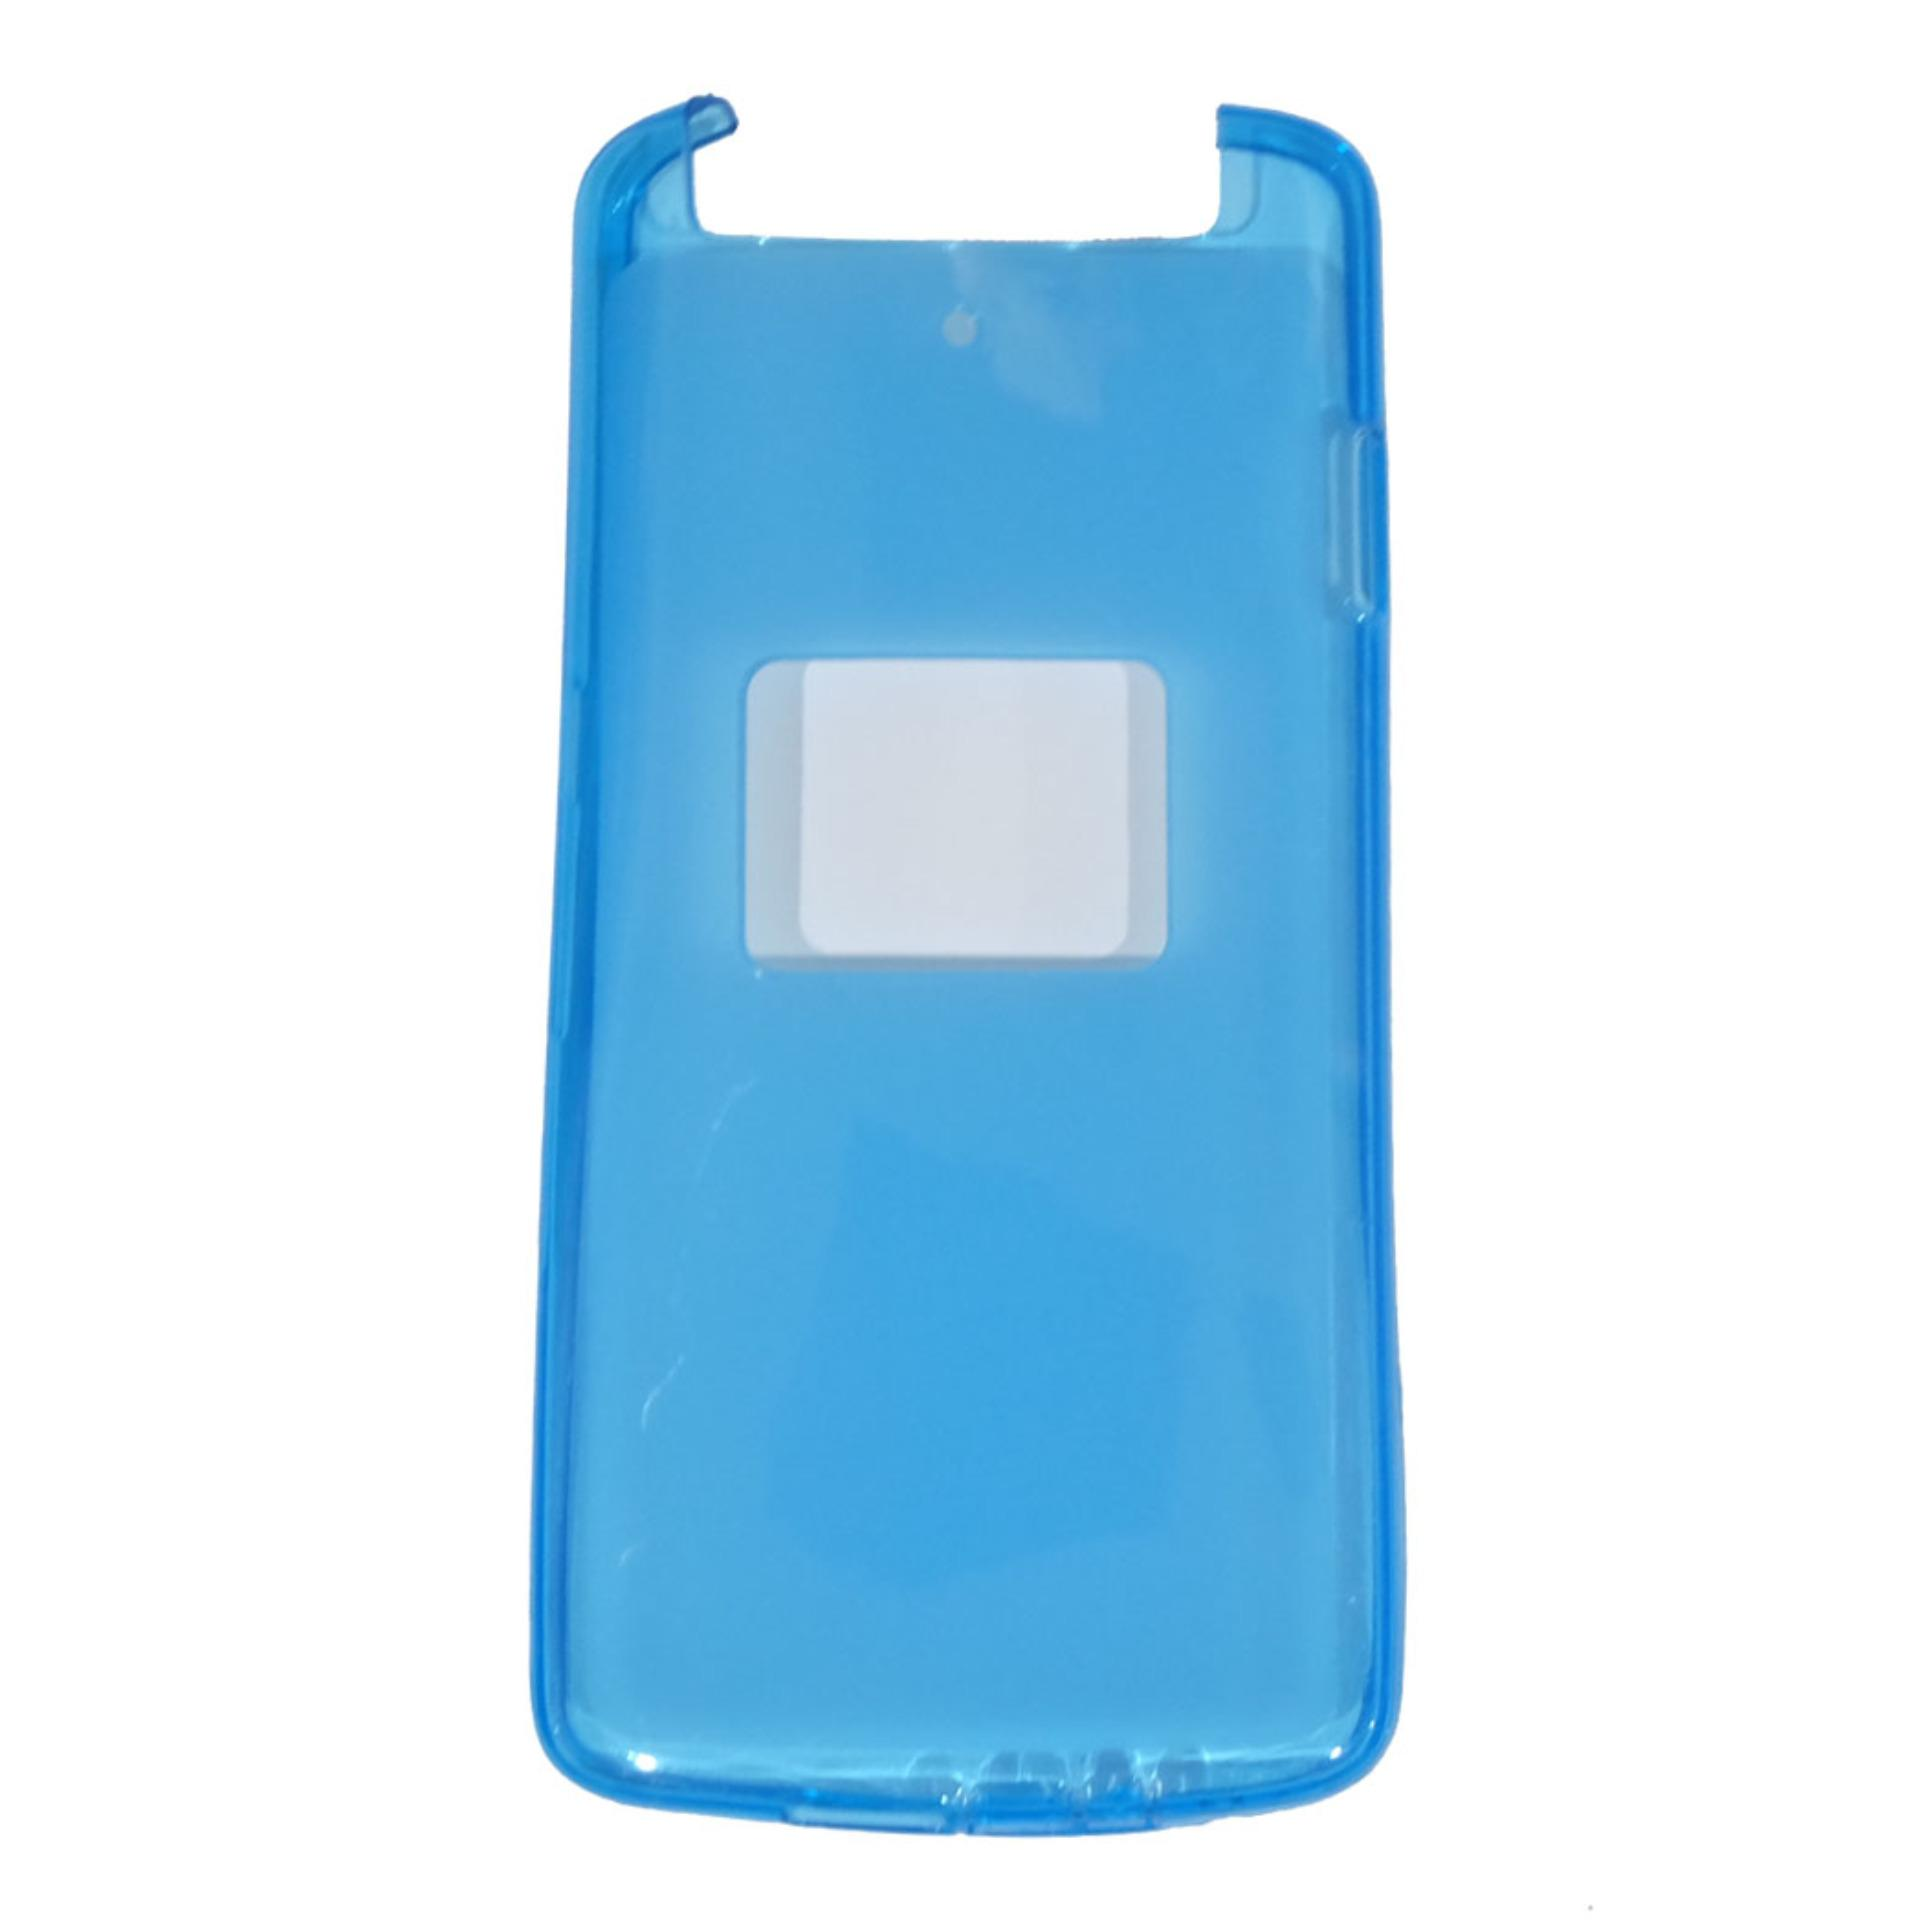 03mm Silicone Soft Case Softjacket Case Handphone Casing Hp Putih Air Source Daftar .